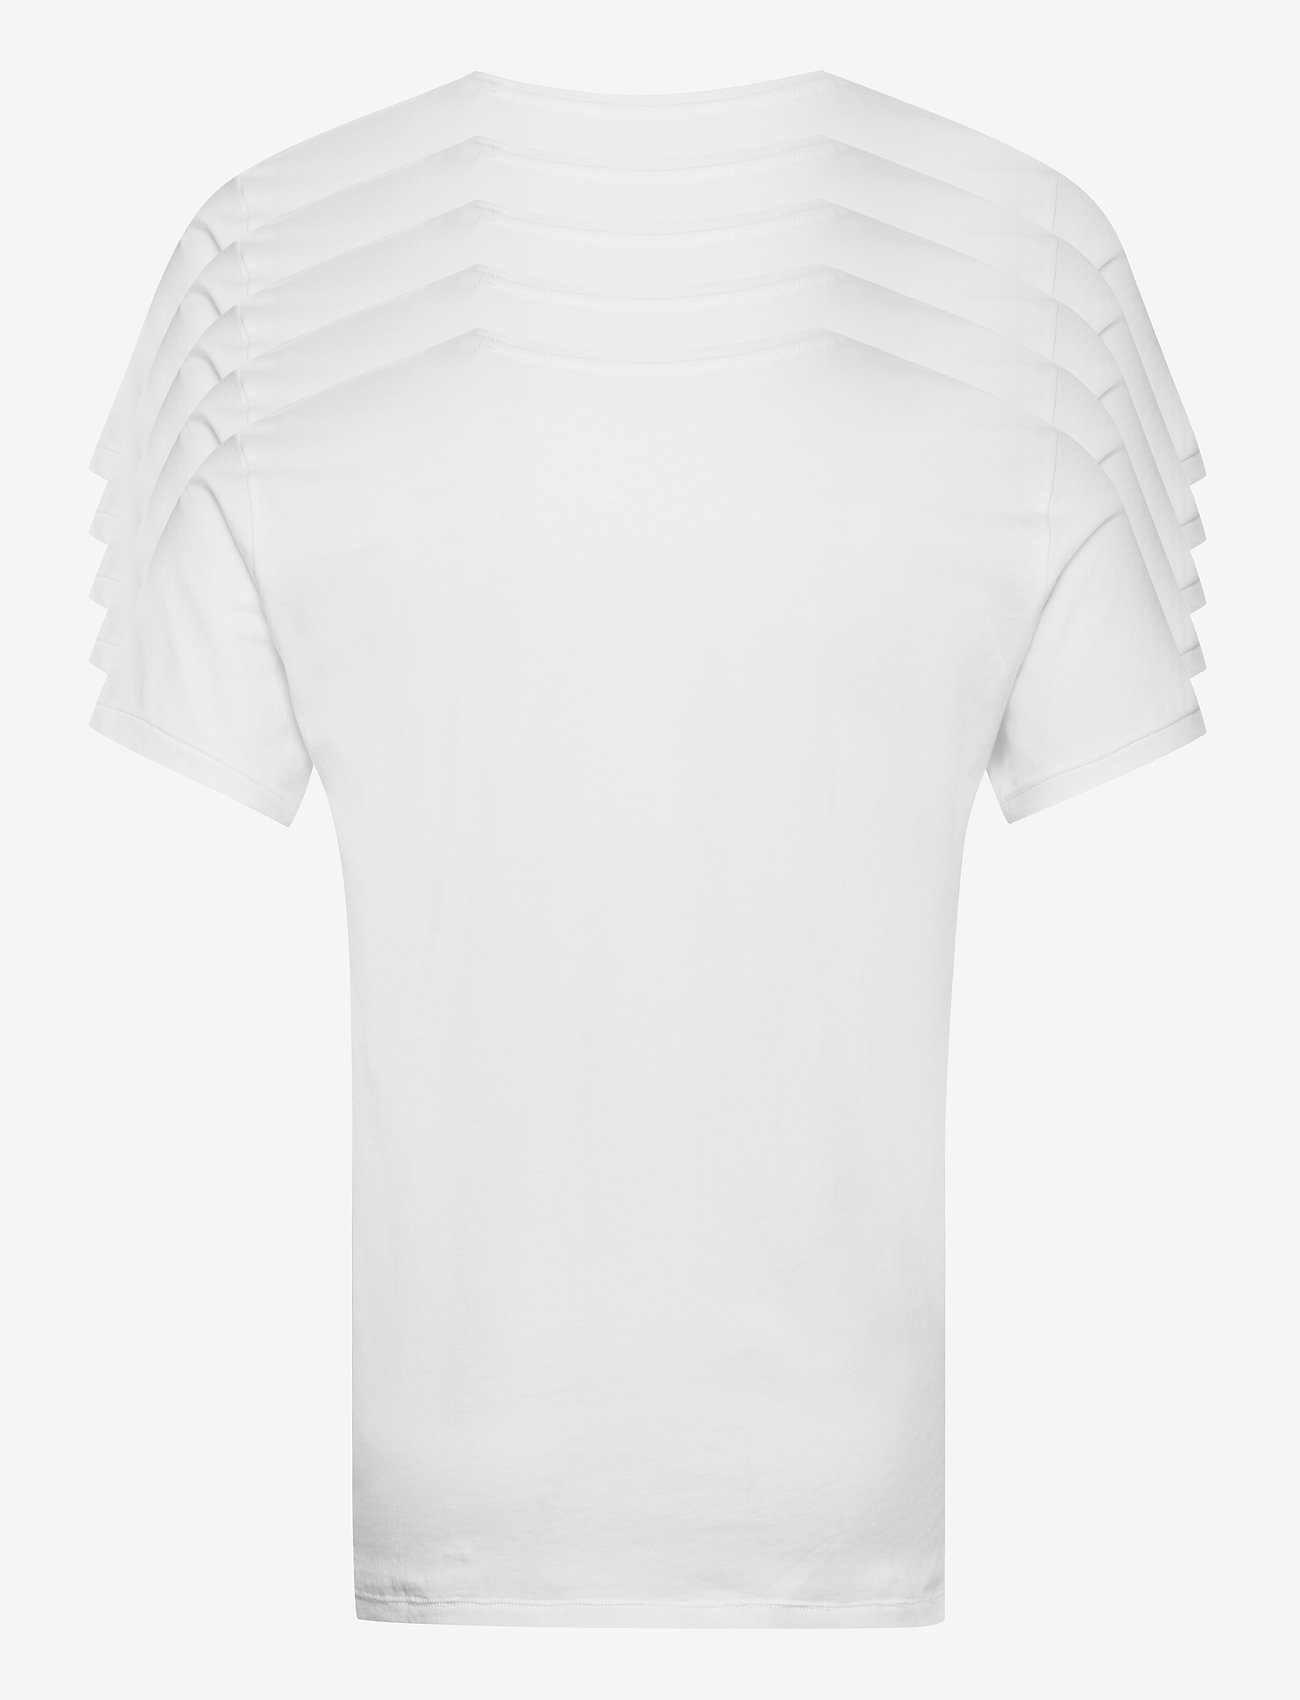 Knowledge Cotton Apparel - ALDER 5 pack basic tee - flat packe - basic t-shirts - bright white - 9